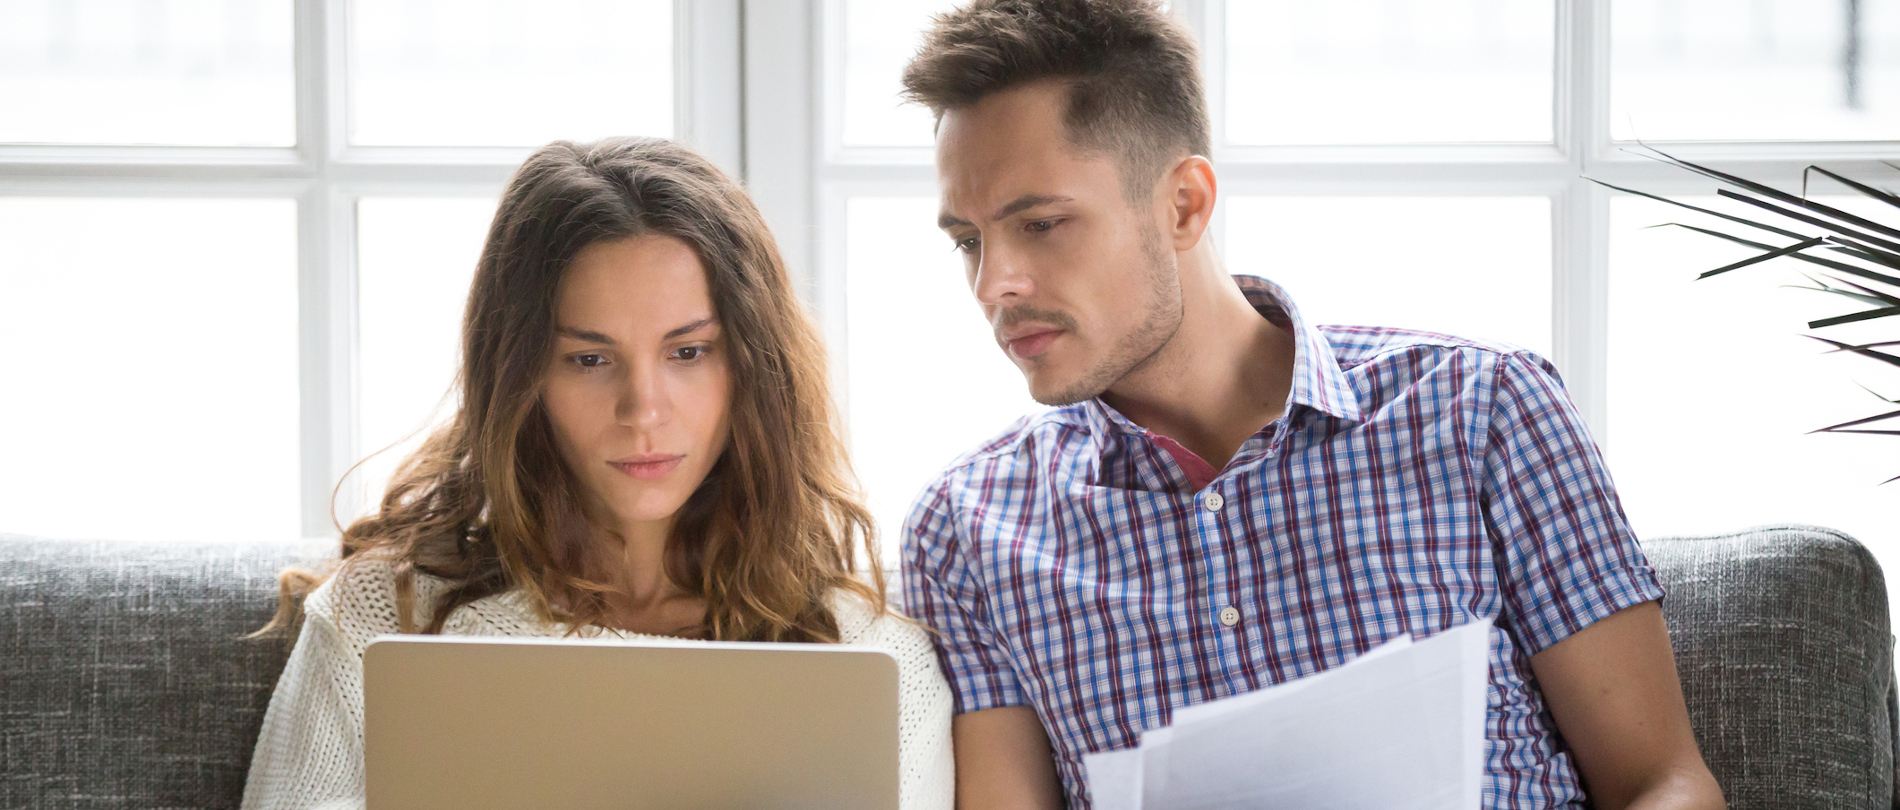 young couple review financial situation during current crisis